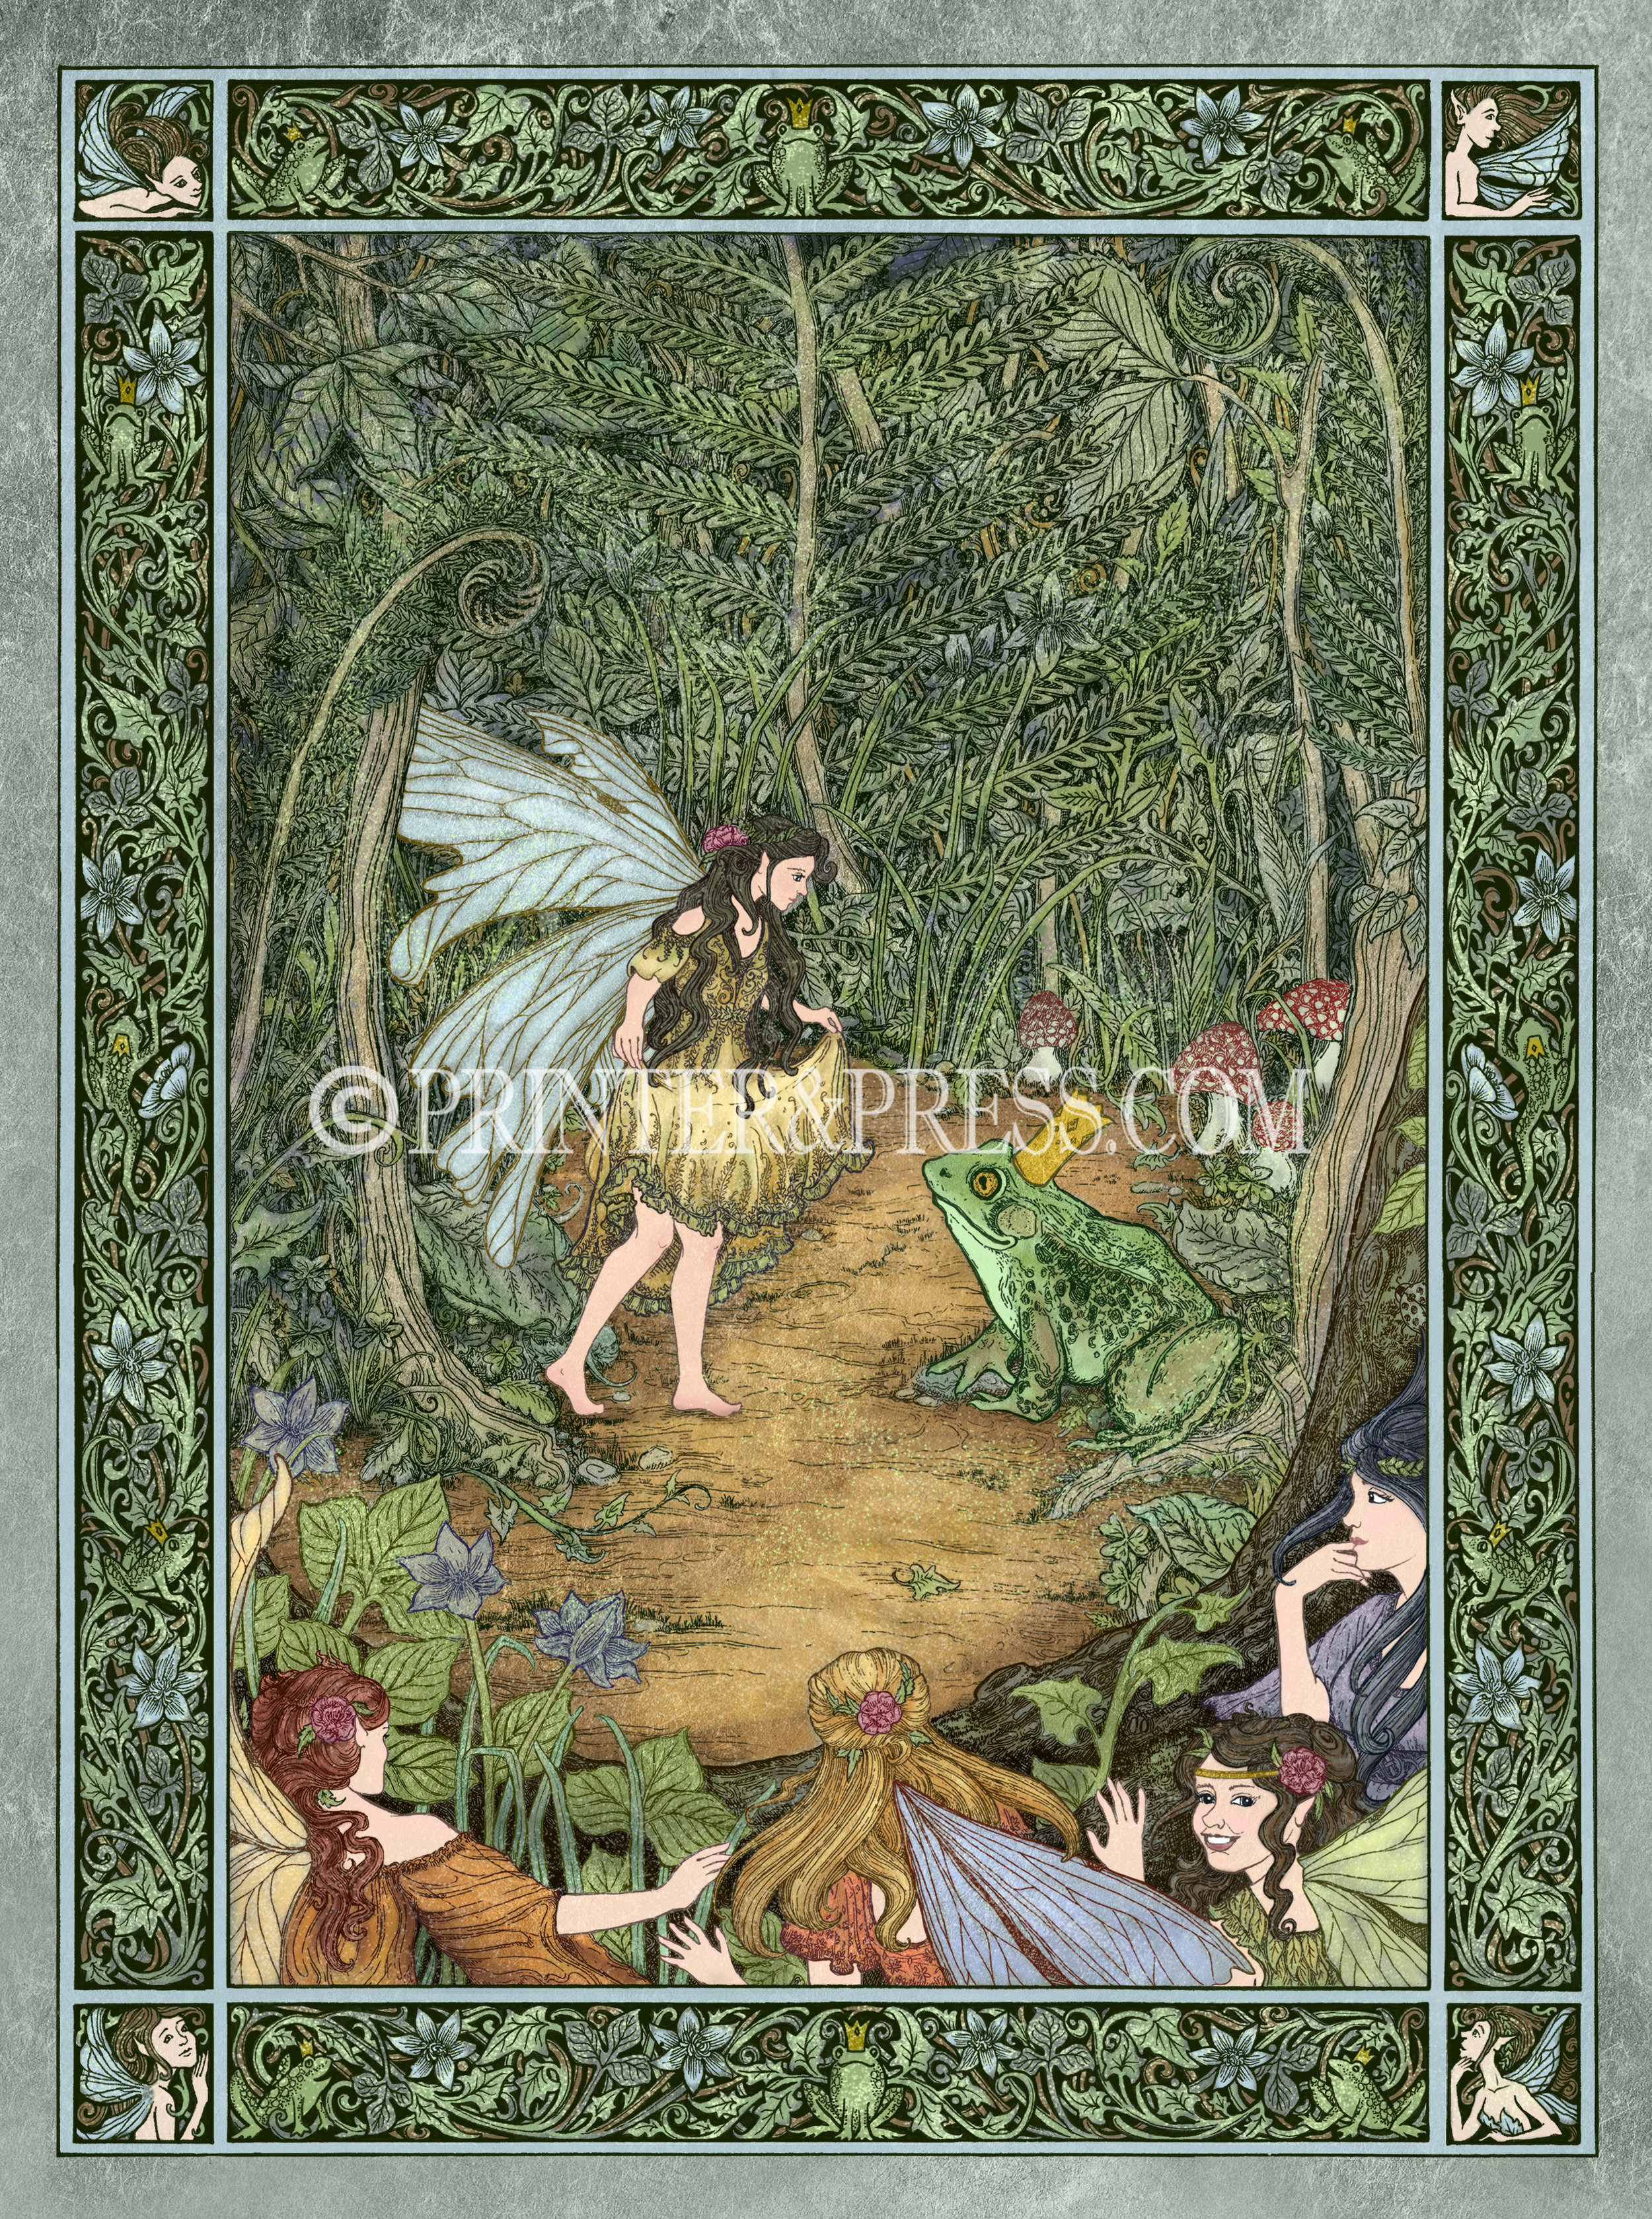 A delicate Faerie curtsies to the King of the Frogs, while her Faerie friends watch from the corners. This piece came to me when I knew I wanted to make an illustration with faeries, and once I added the frog I knew she had to be curtsying! It's such a magical scene, and of course the other faeries would be spying from behind the plants, because what faerie isn't just a little curious?